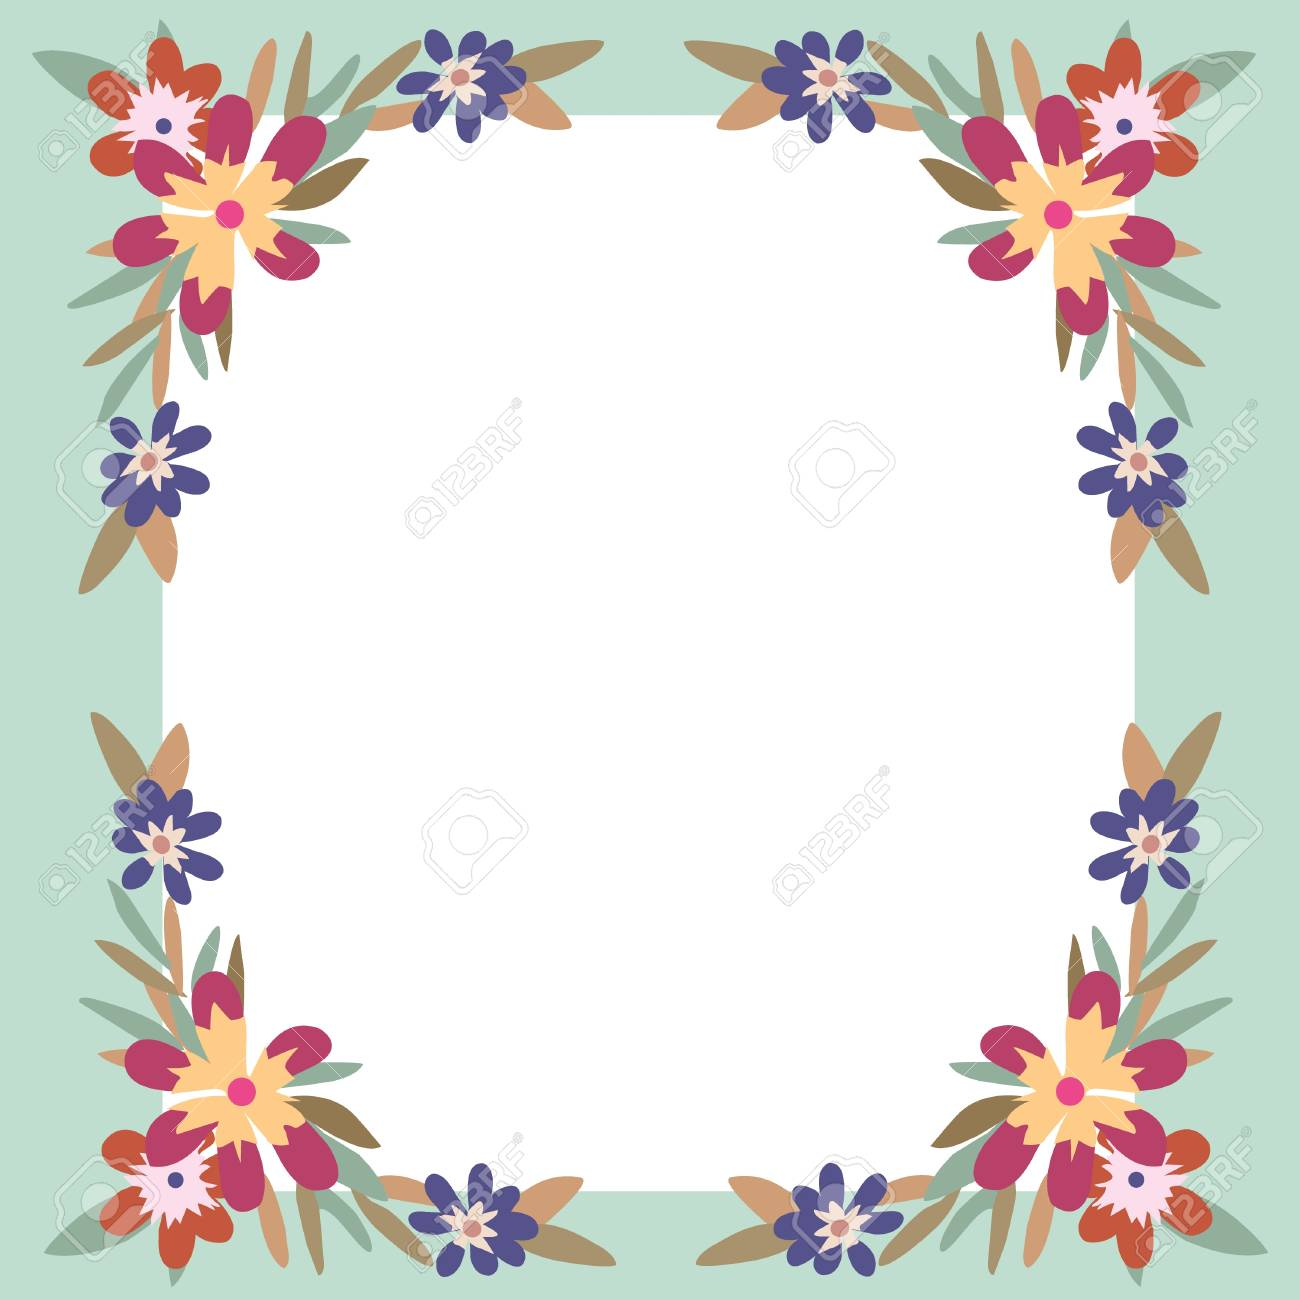 Flowers Frame Background Royalty Free Cliparts Vectors And Stock